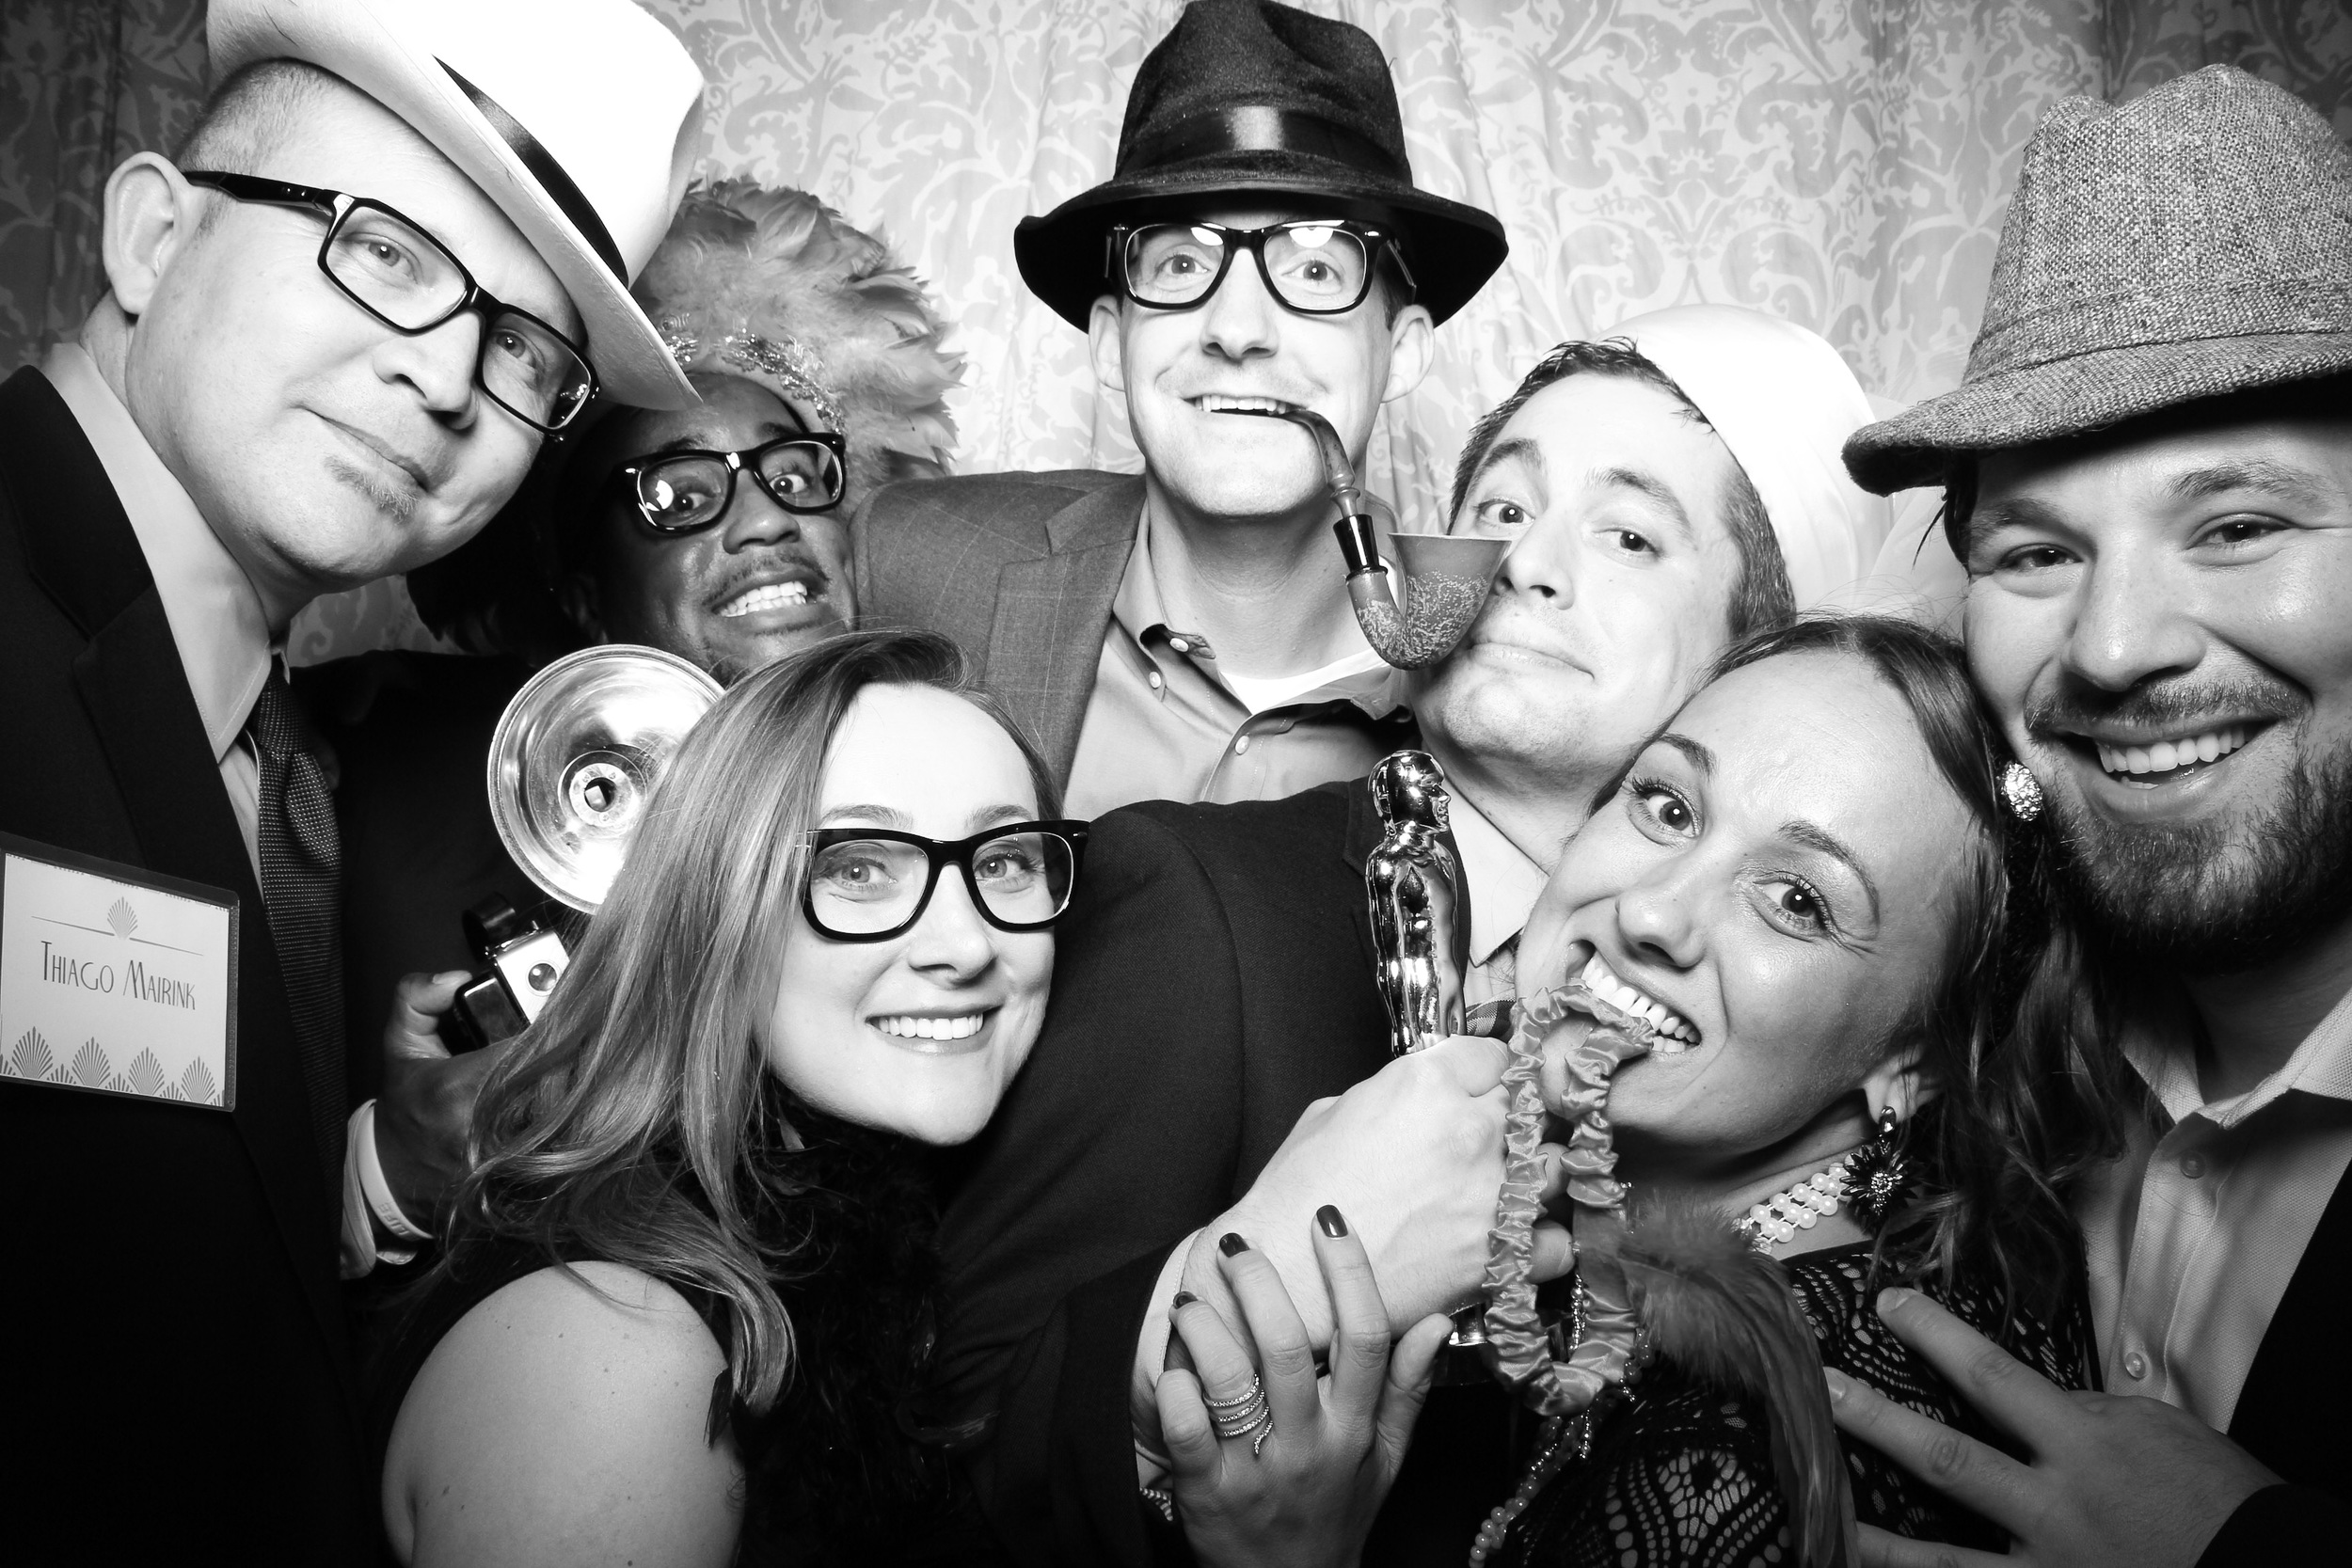 Corporate event guests takes a fun photo booth group shot with vintage style 20s props at the Union League Club of Chicago!